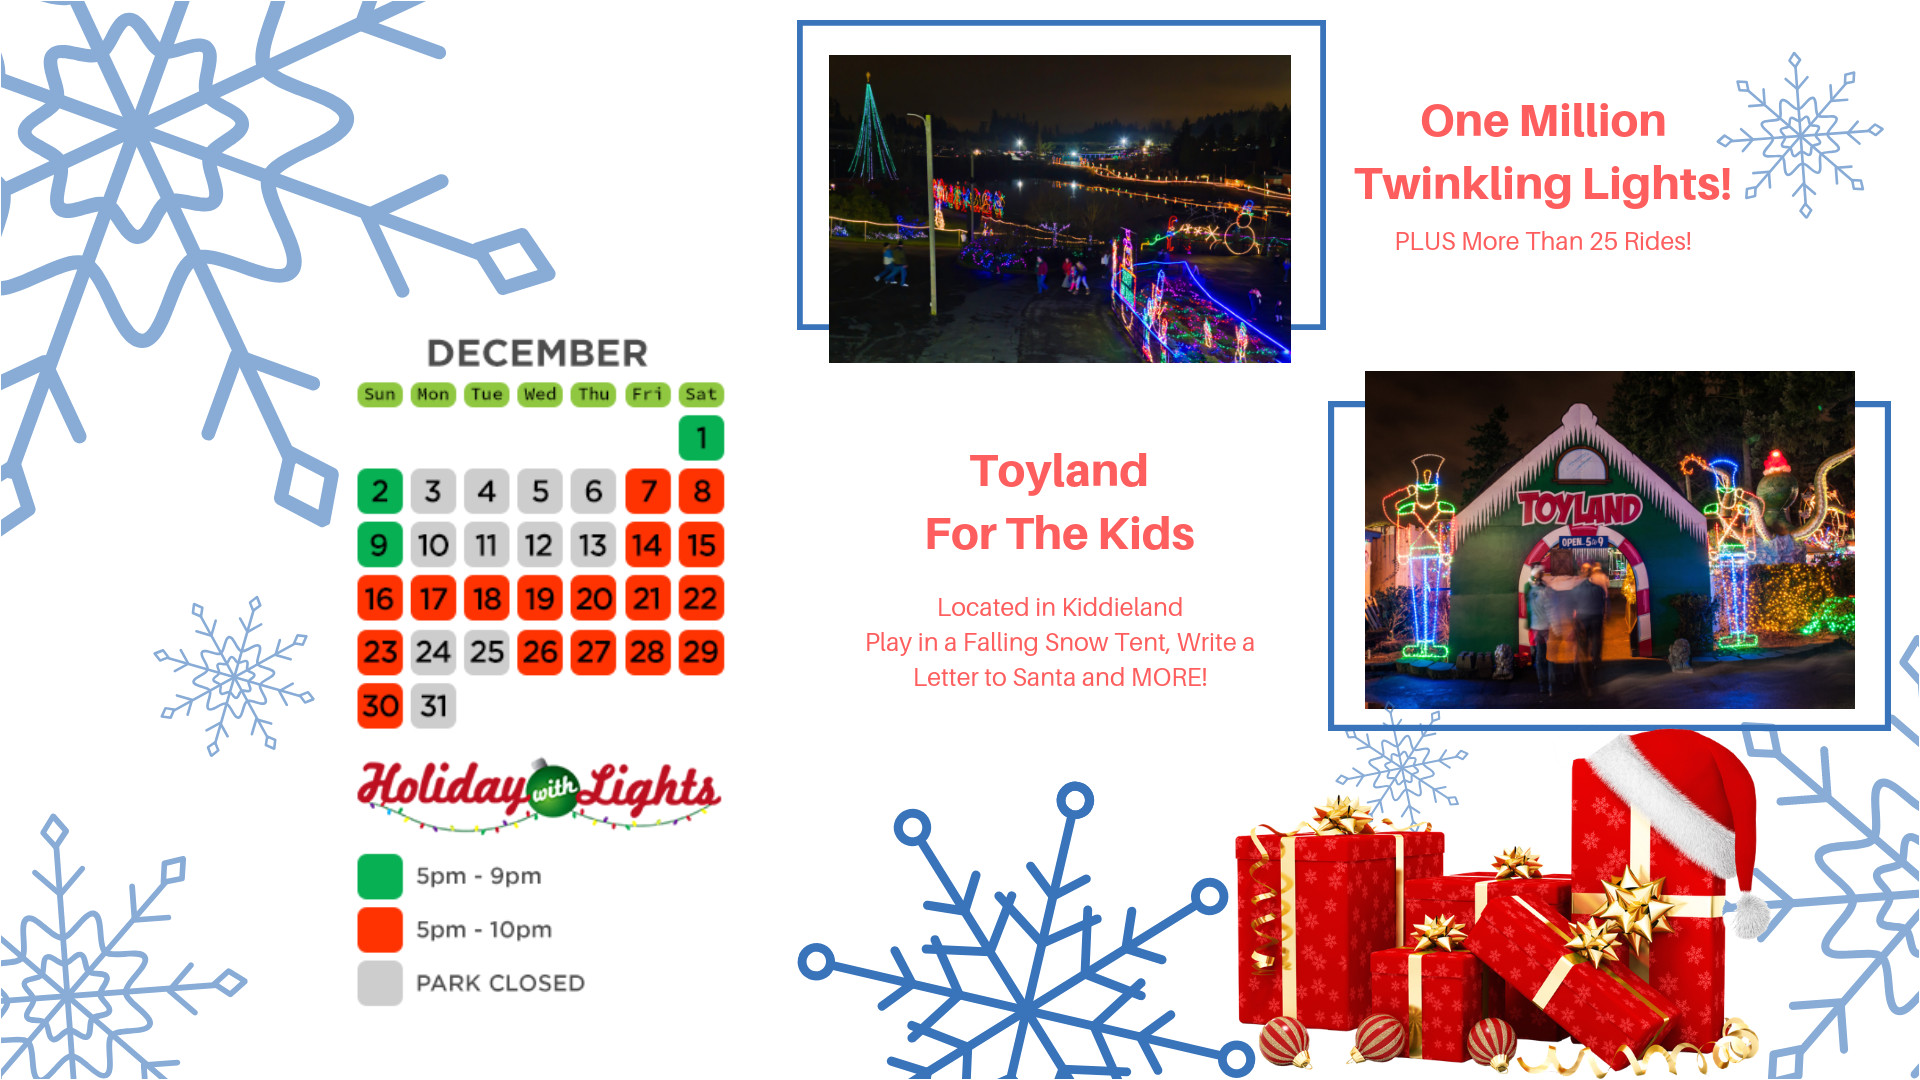 santa claus is coming to wild waves theme water park in december little elves light up the theme park with a dazzling display of more than a million